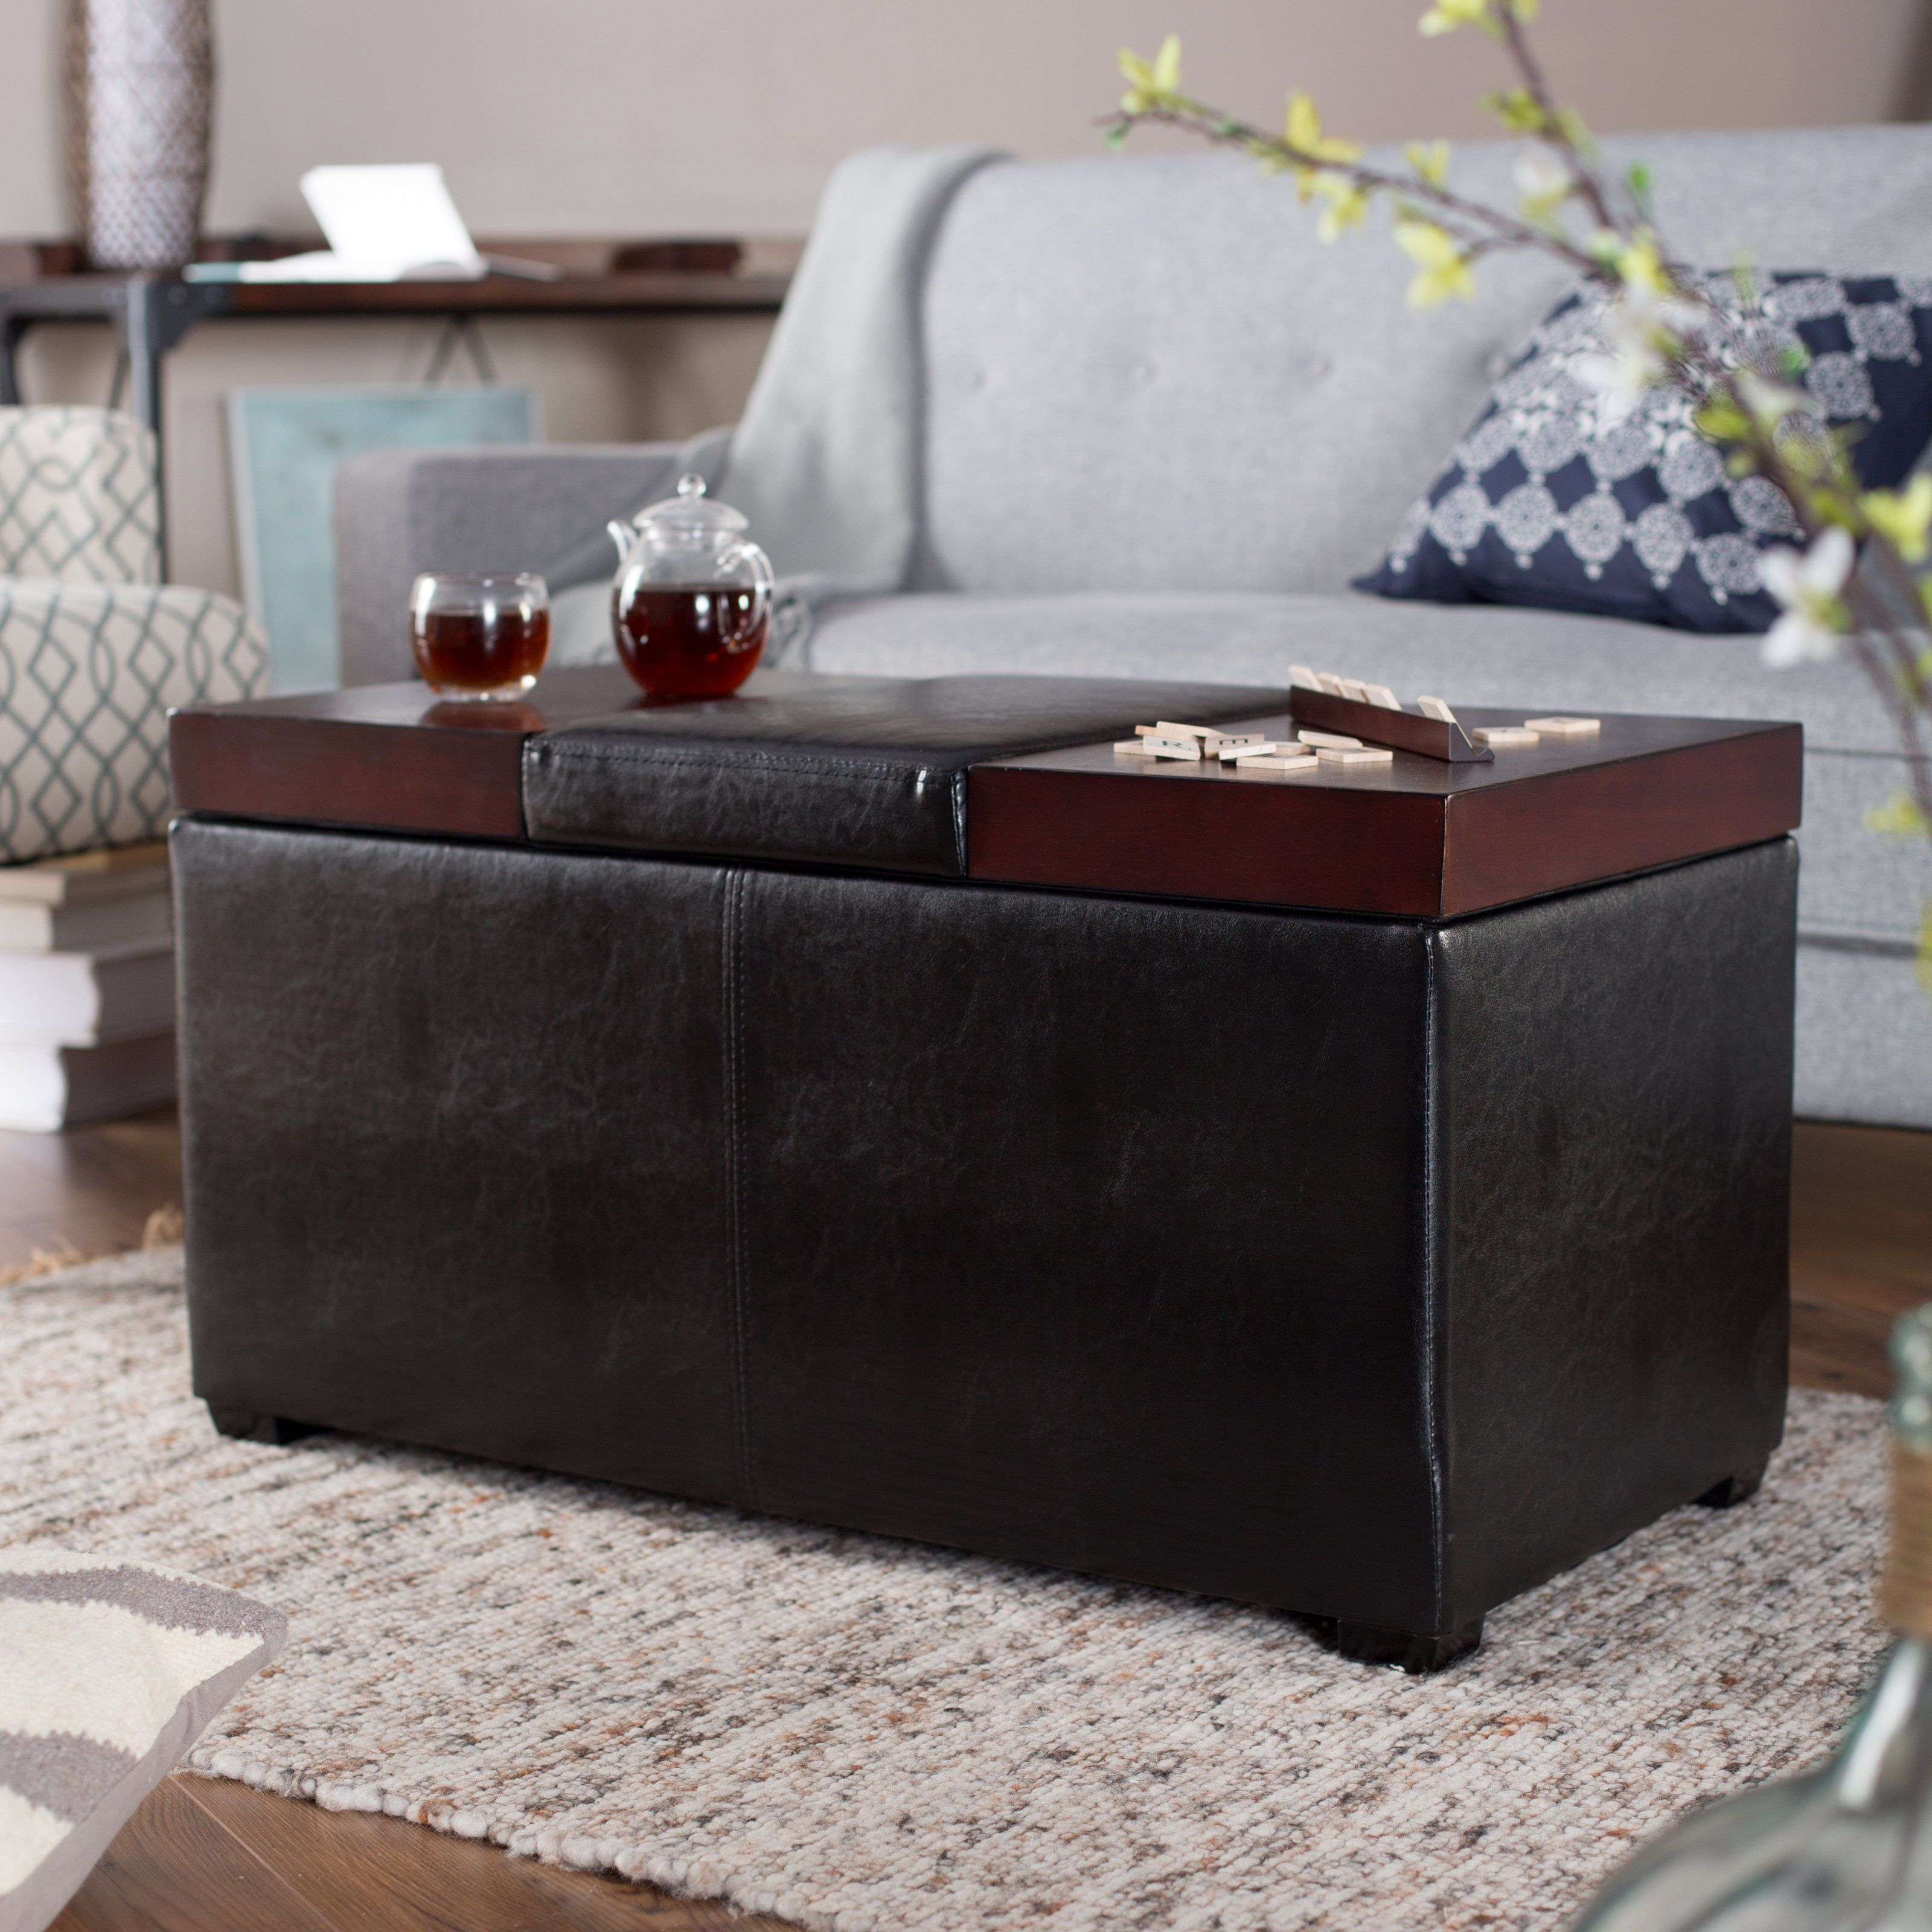 Have To Have It Belham Living Madison Lift Top Upholstered Storage Ottoman 149 98 Storage Ottoman Coffee Table Leather Coffee Table Ottoman In Living Room [ 3200 x 3200 Pixel ]